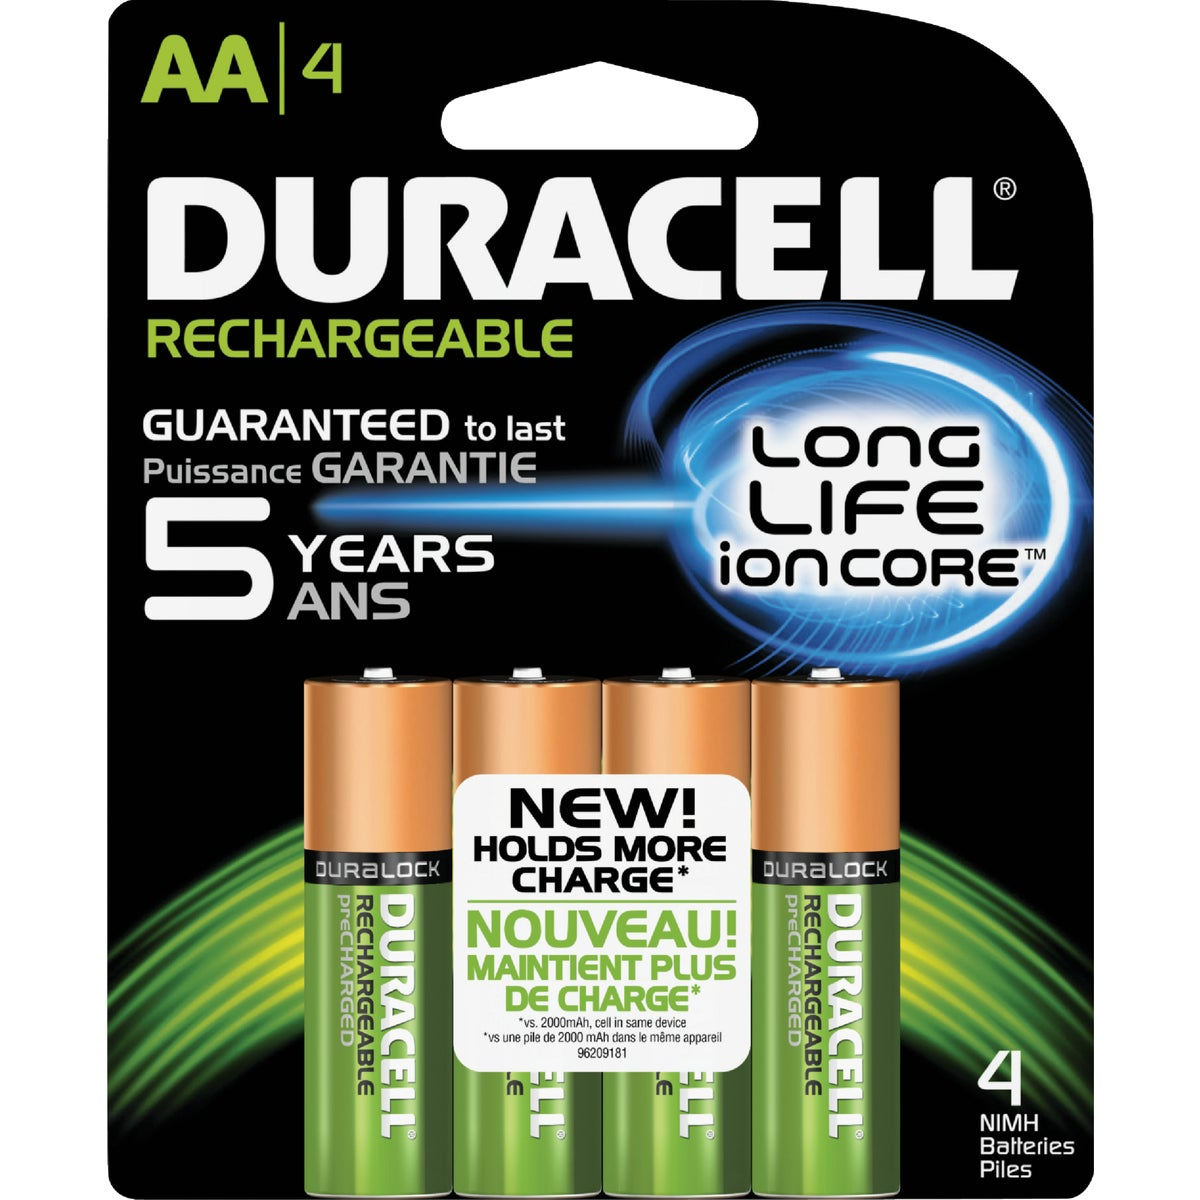 DURACELL STAYCHARGED AA - 66155 by P & G  Duracell